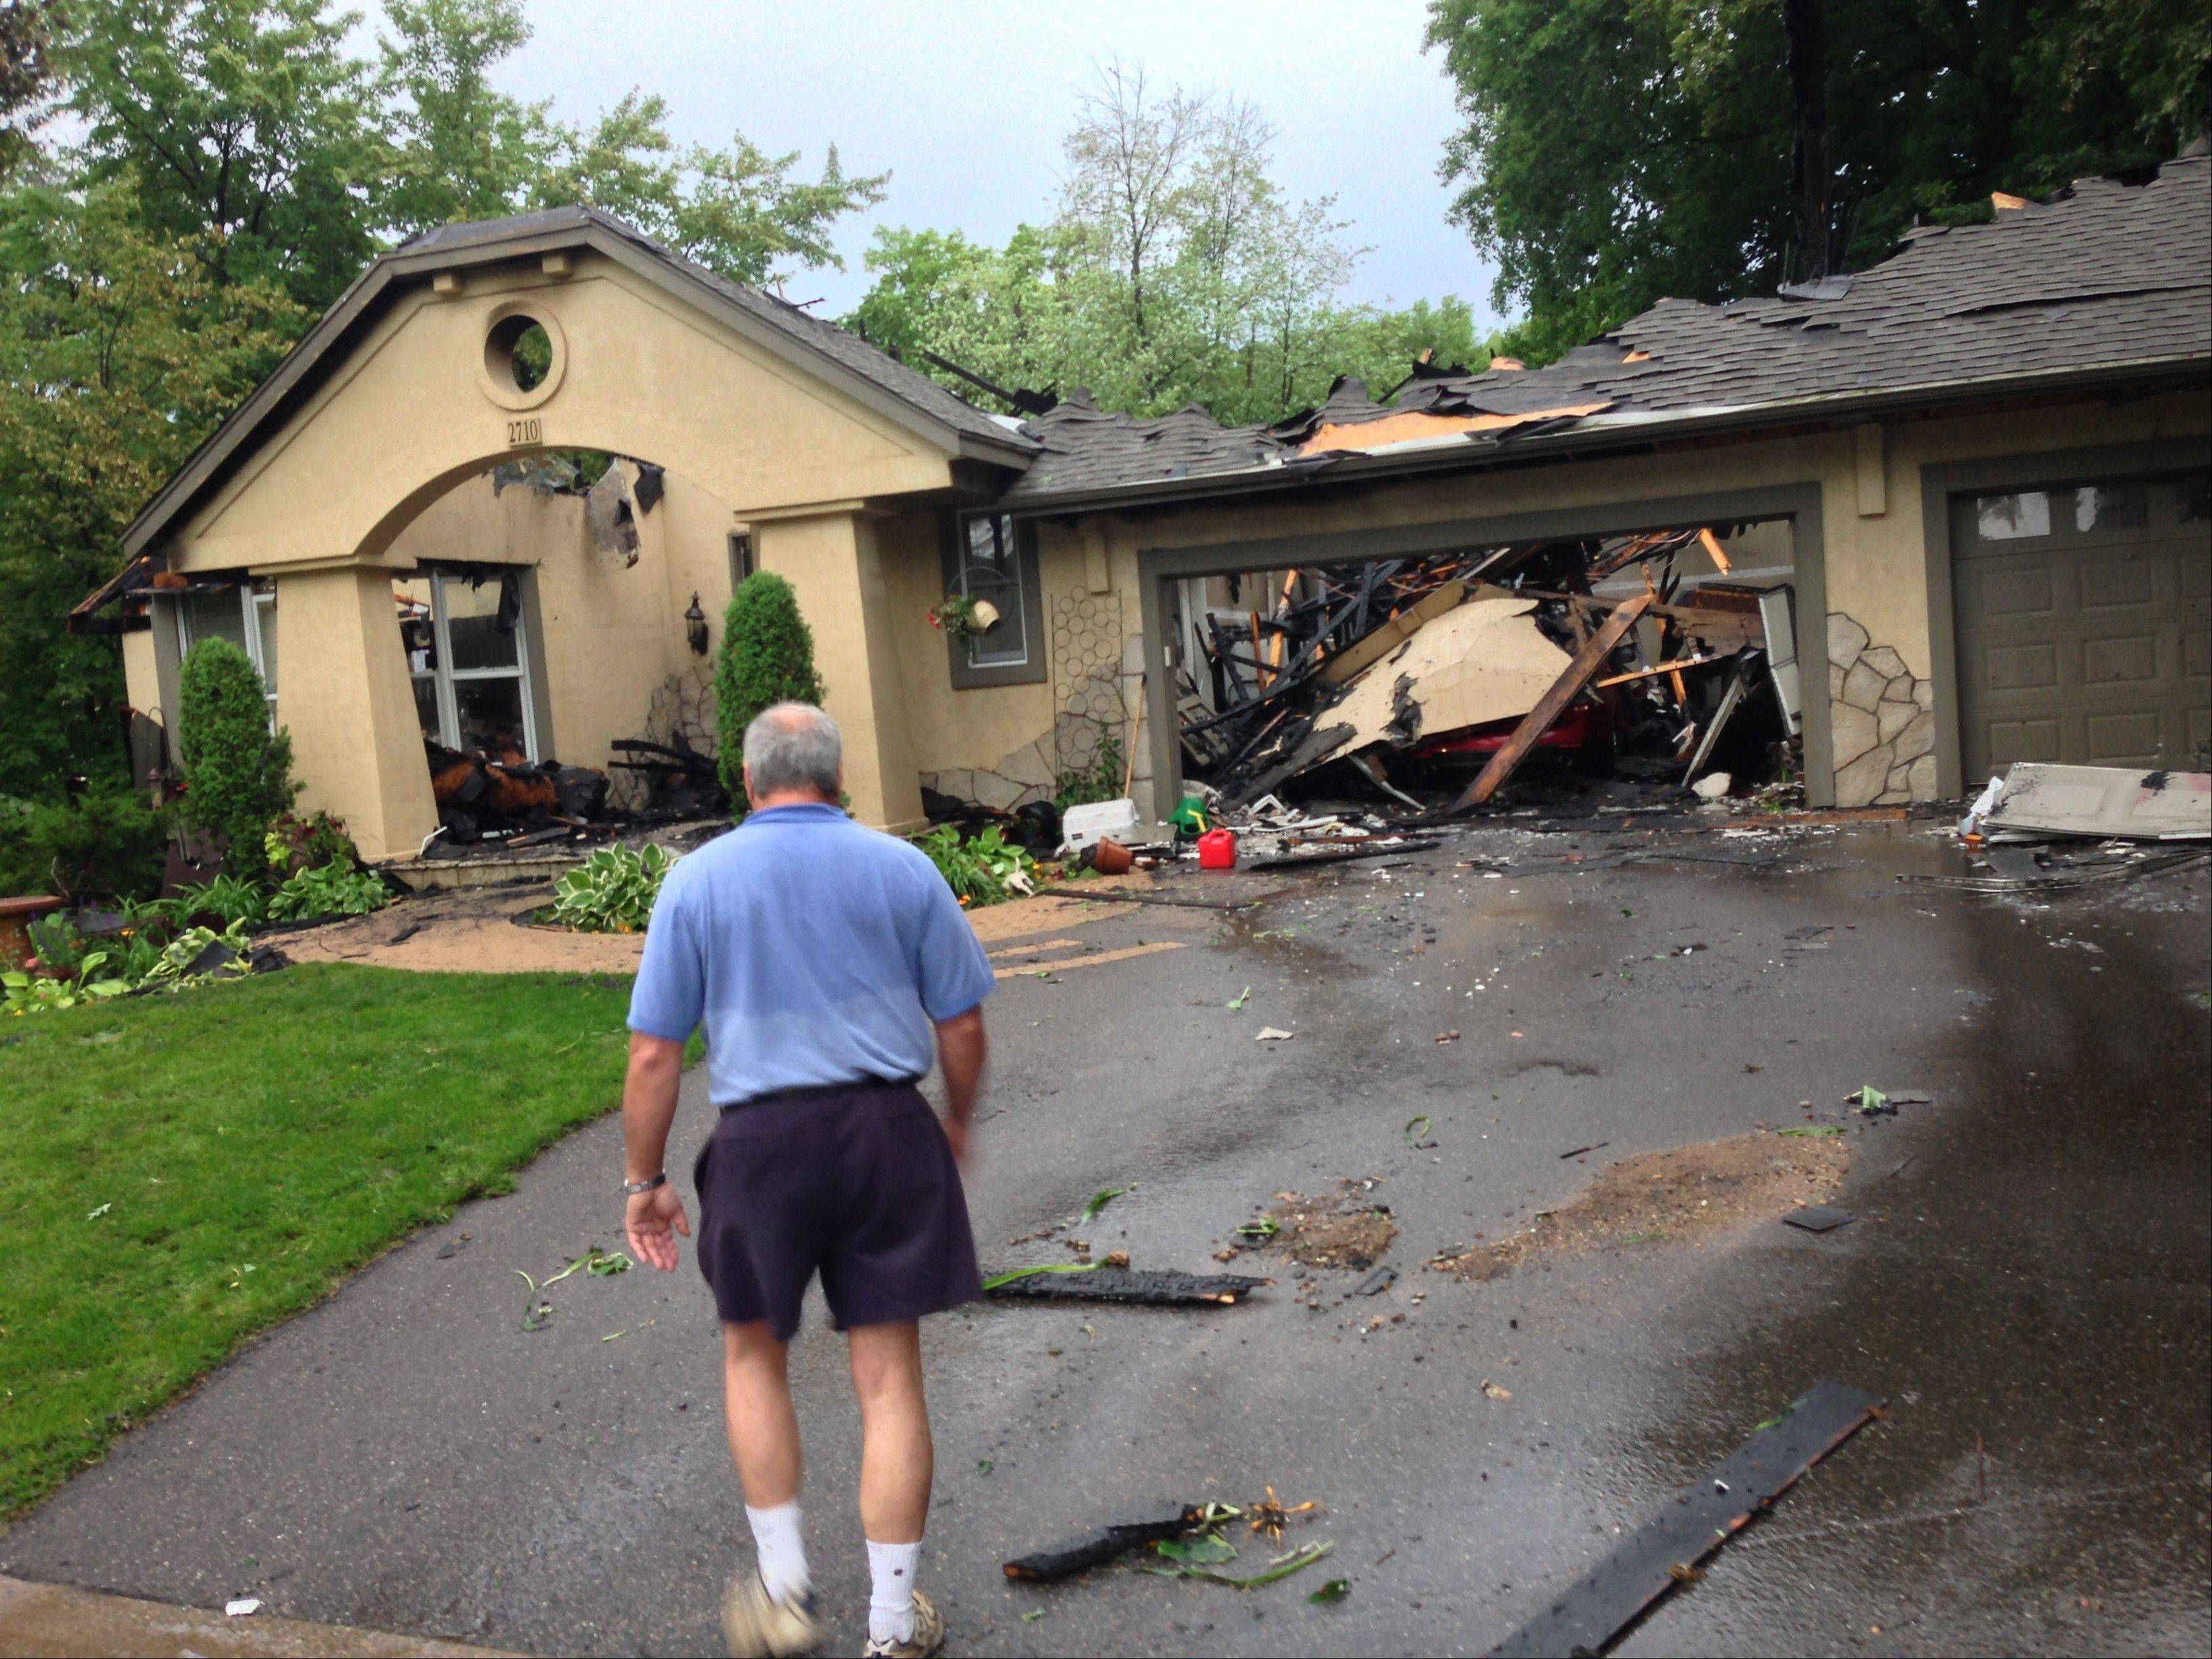 A resident looks over a house Friday that was damaged during a storm in Minnetonka, Minn. More severe weather was forecast for Minnesota for later Friday night and early Saturday.